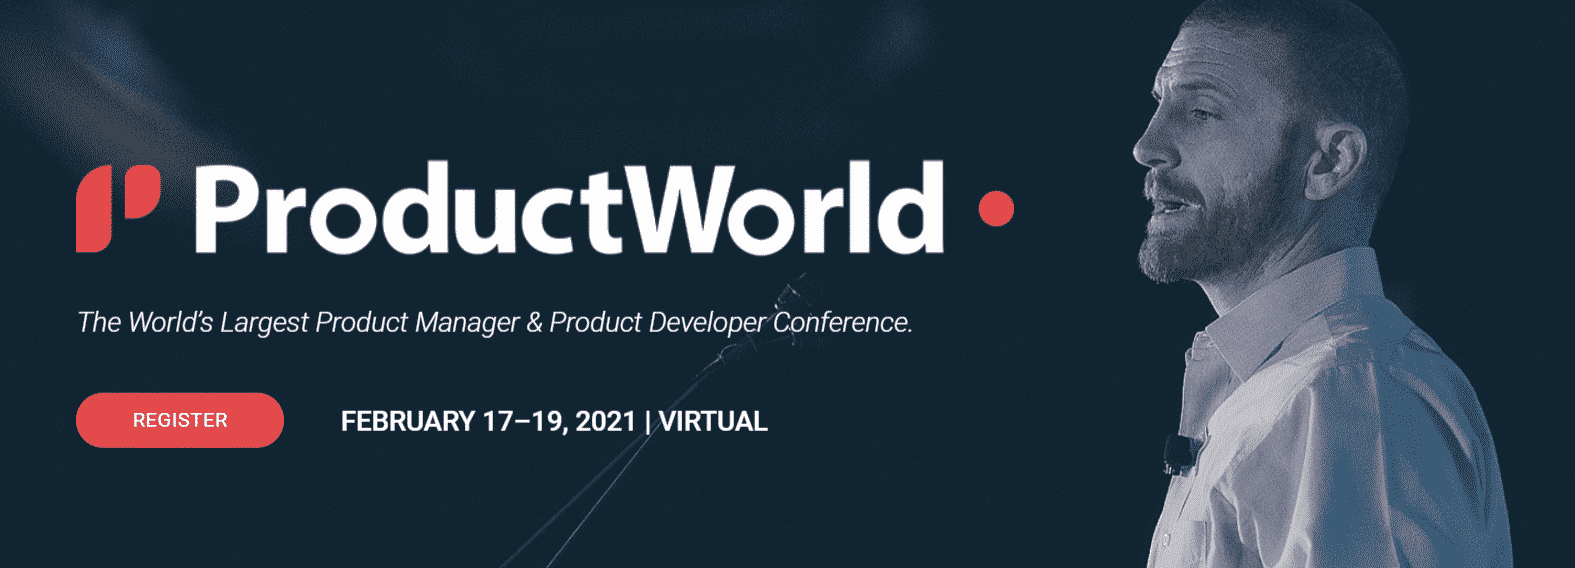 ProductWorld 2021